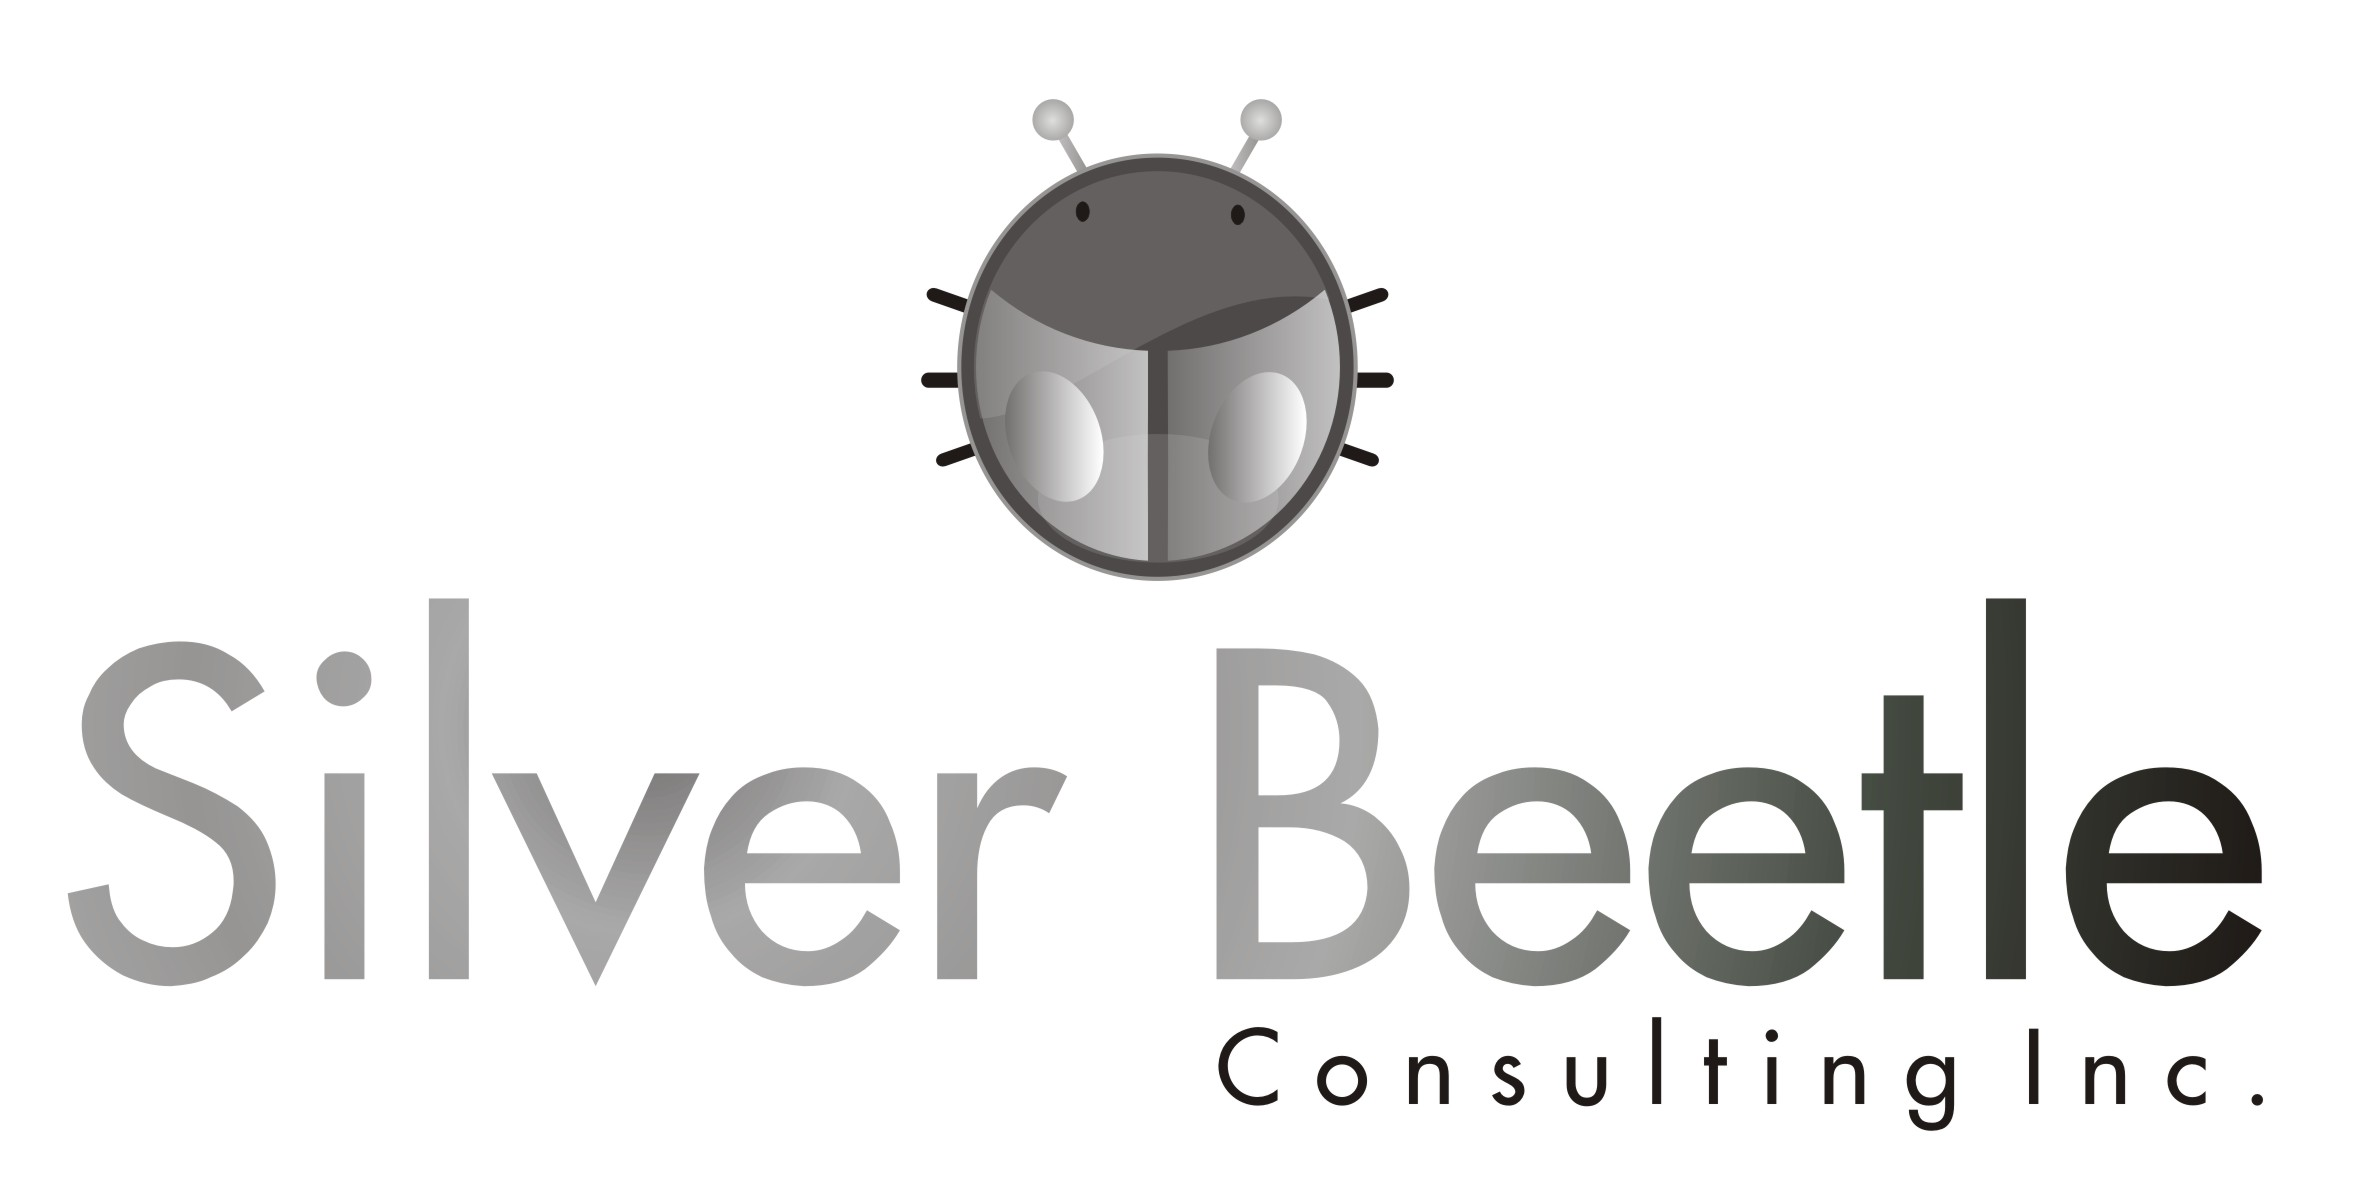 Logo Design by Private User - Entry No. 13 in the Logo Design Contest Silver Beetle Consulting Inc. Logo Design.